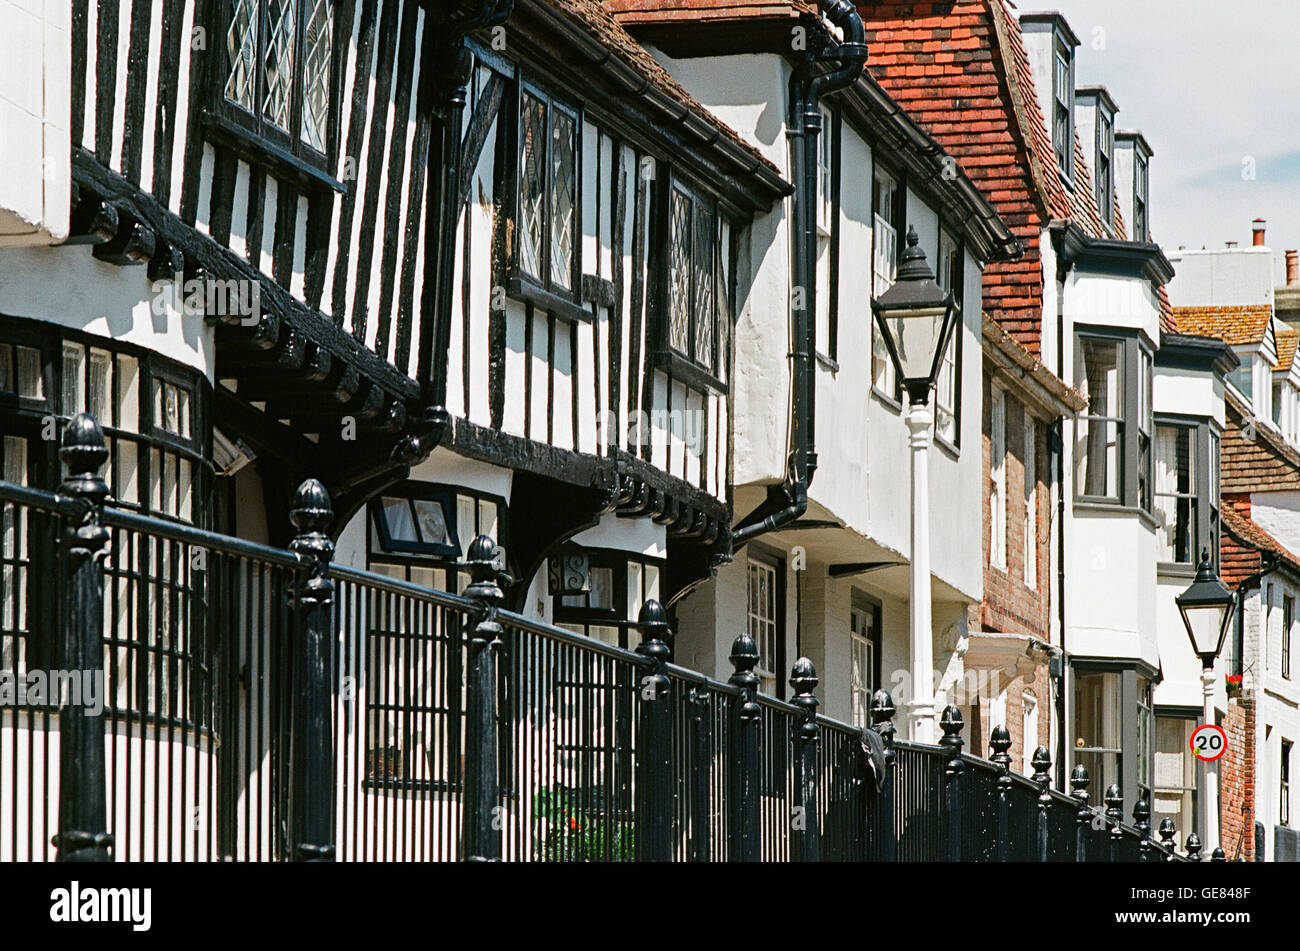 Tudor Timber-framed houses and Georgian buildings in Hastings Old Town, East Sussex, UK - Stock Image